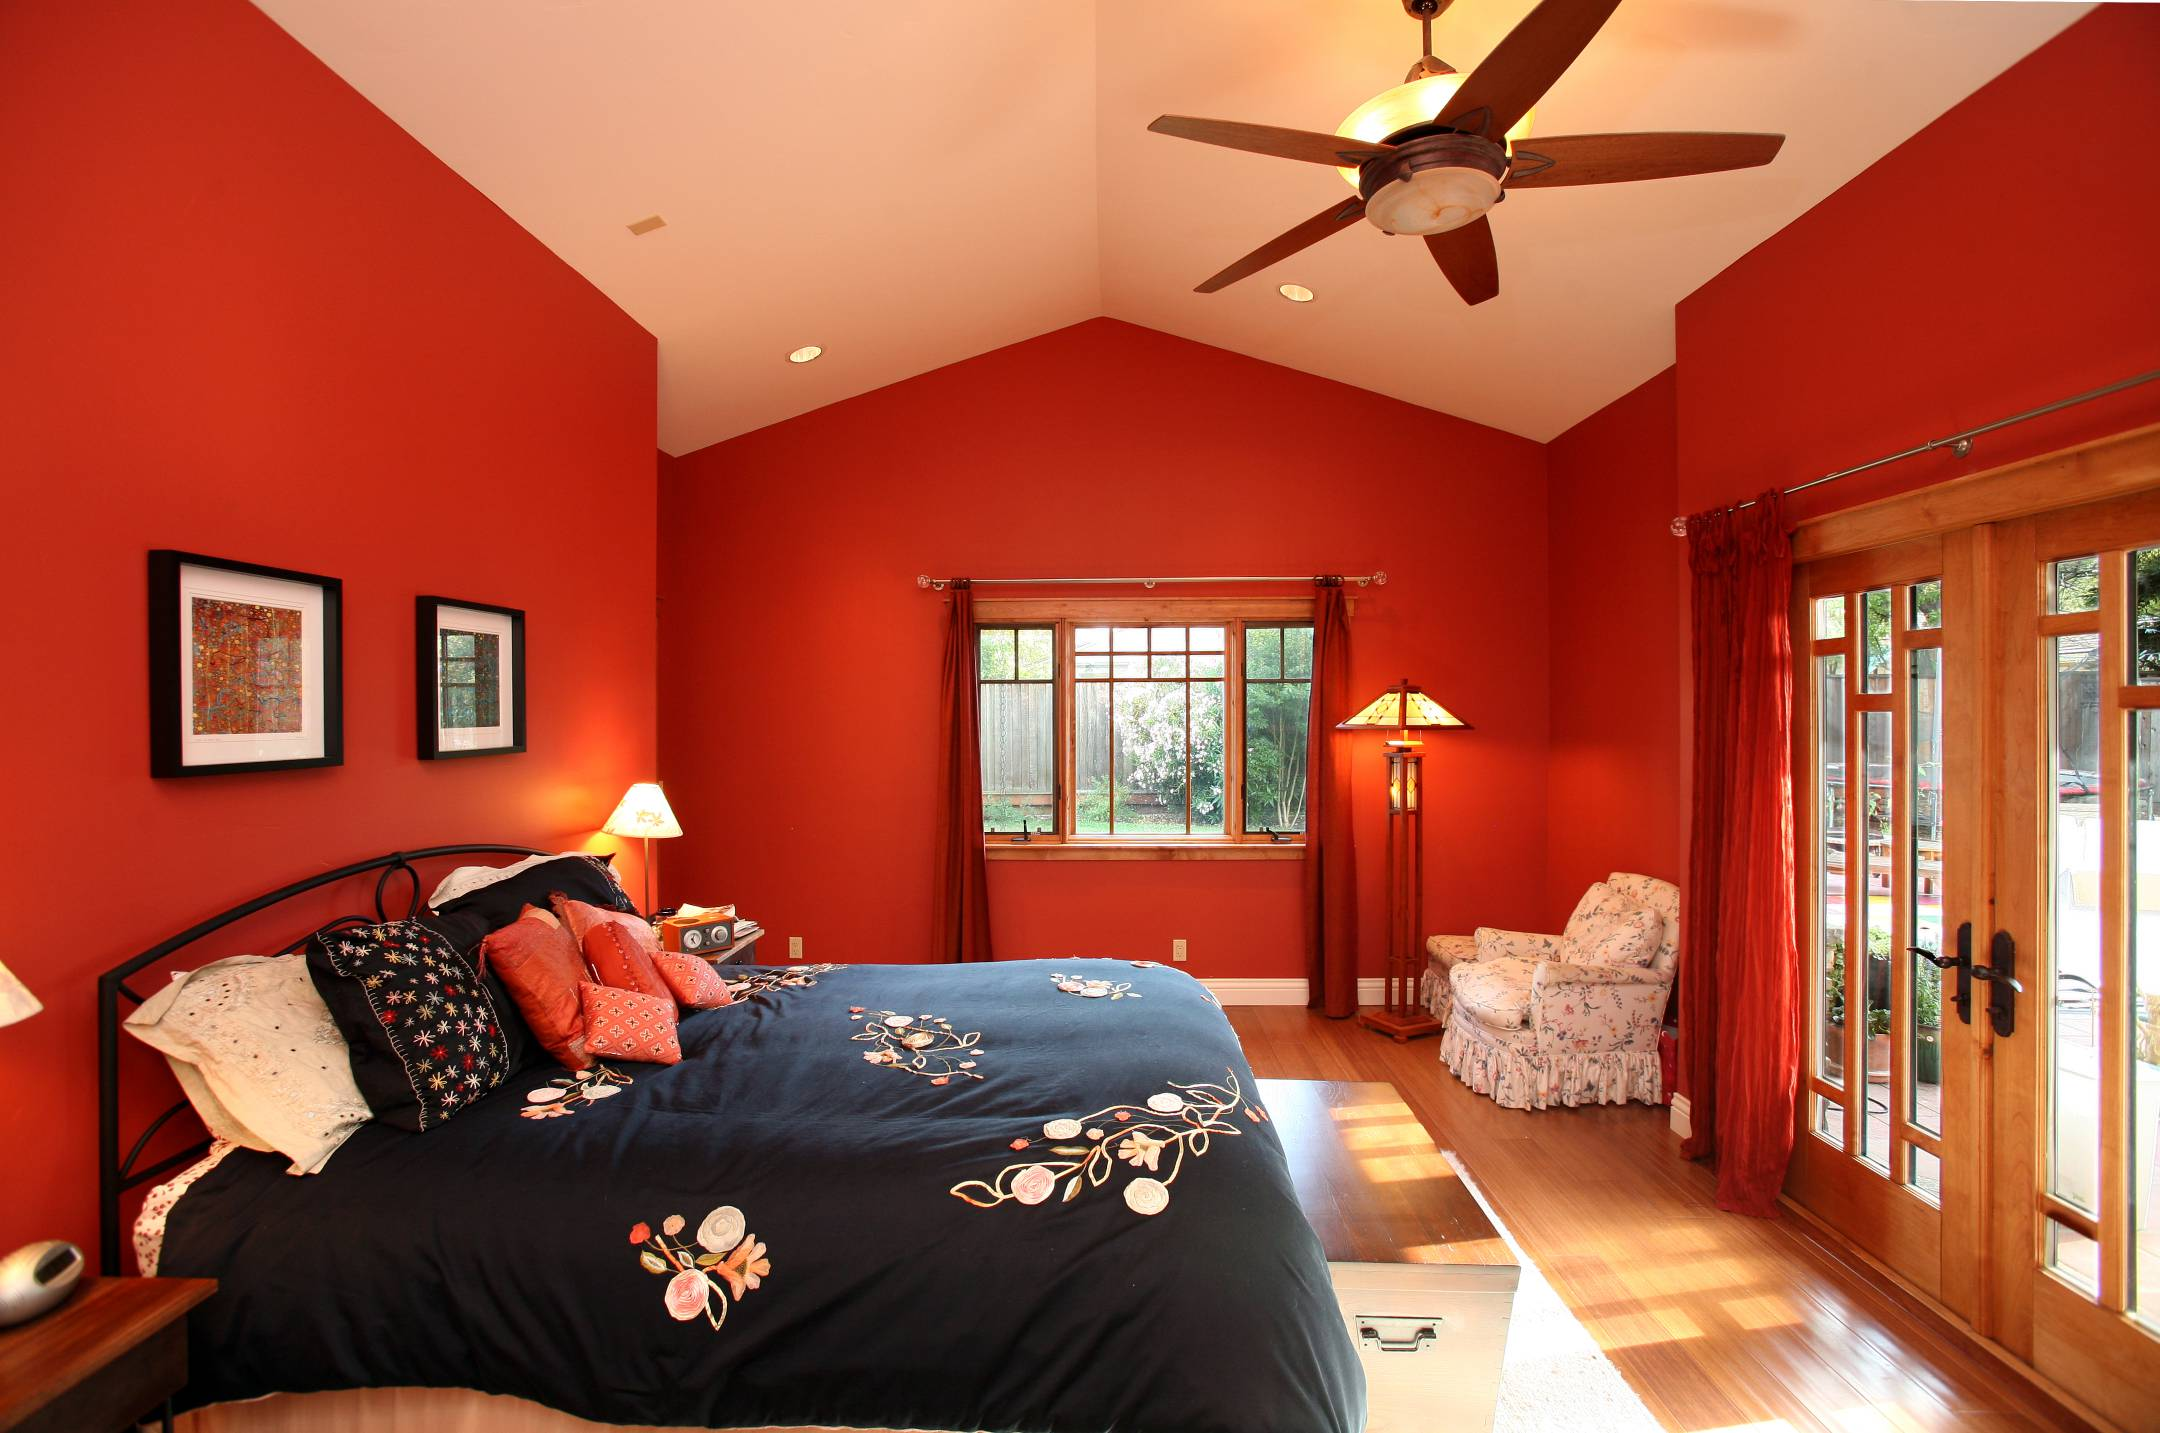 Master bedroom red walls backyard access, interior design, Los Altos